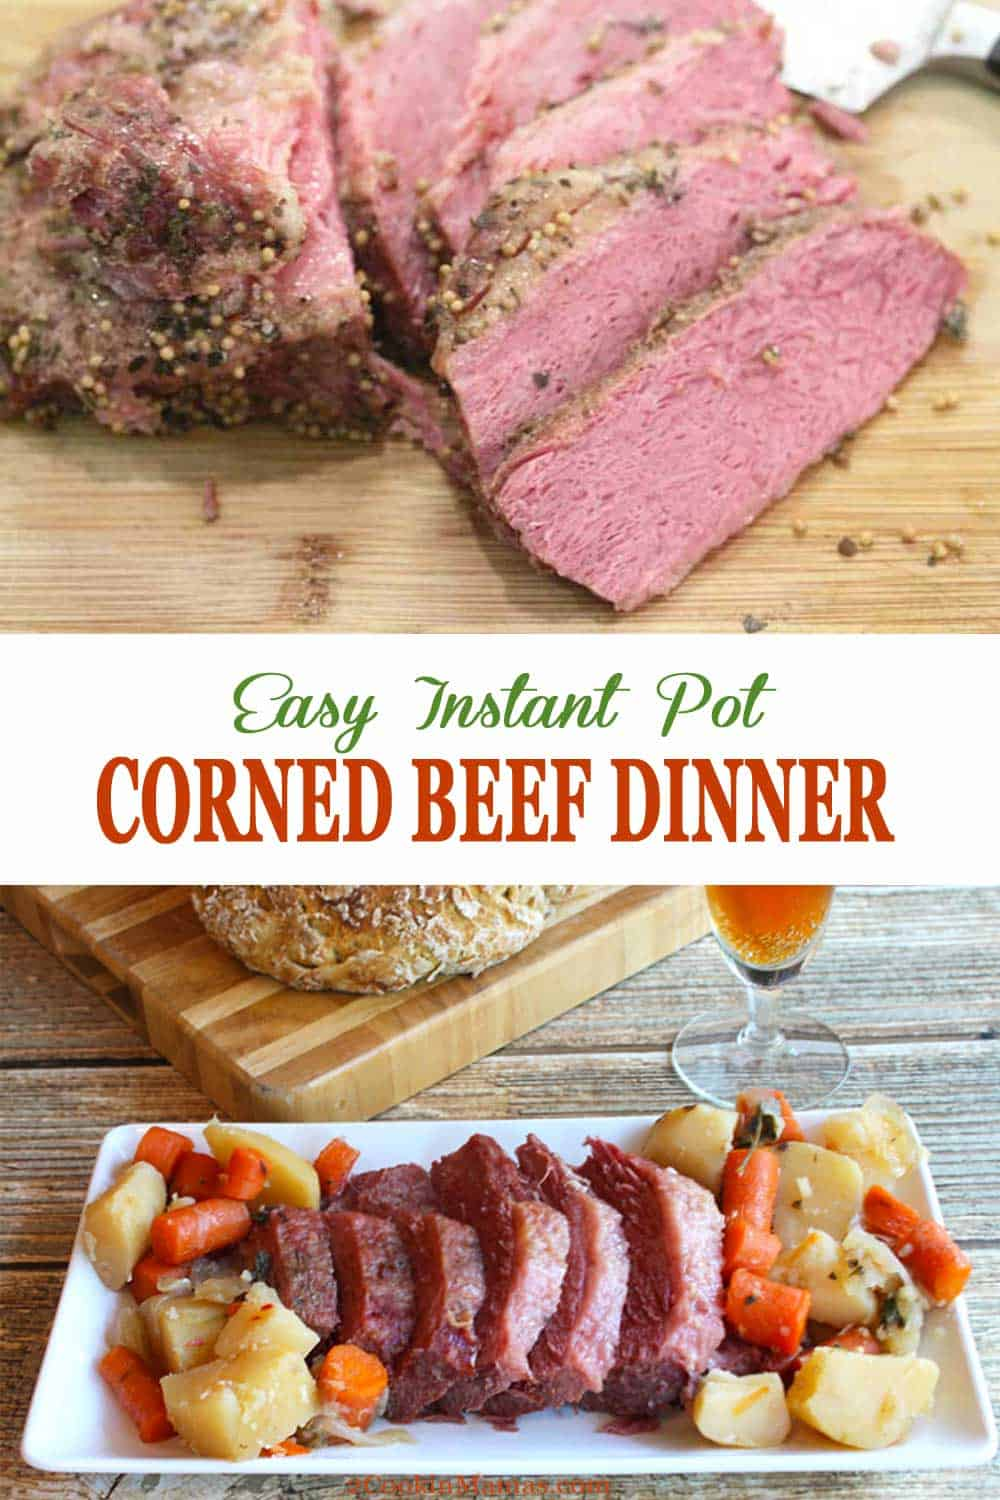 Instant Pot Corned Beef Dinner with Beer | 2 Cookin Mamas This easy Instant Pot Corned Beef is moist, flavorful and sure to become a family dinner favorite. Corned beef is cooked in beef stock and dark beer then joined by potatoes, carrots and onions to make a tasty one pot meal. If the taste doesn't get you salivating, the aromas will! #cornedbeef #instantpot #dinner #stpatricksday #recipe #easy